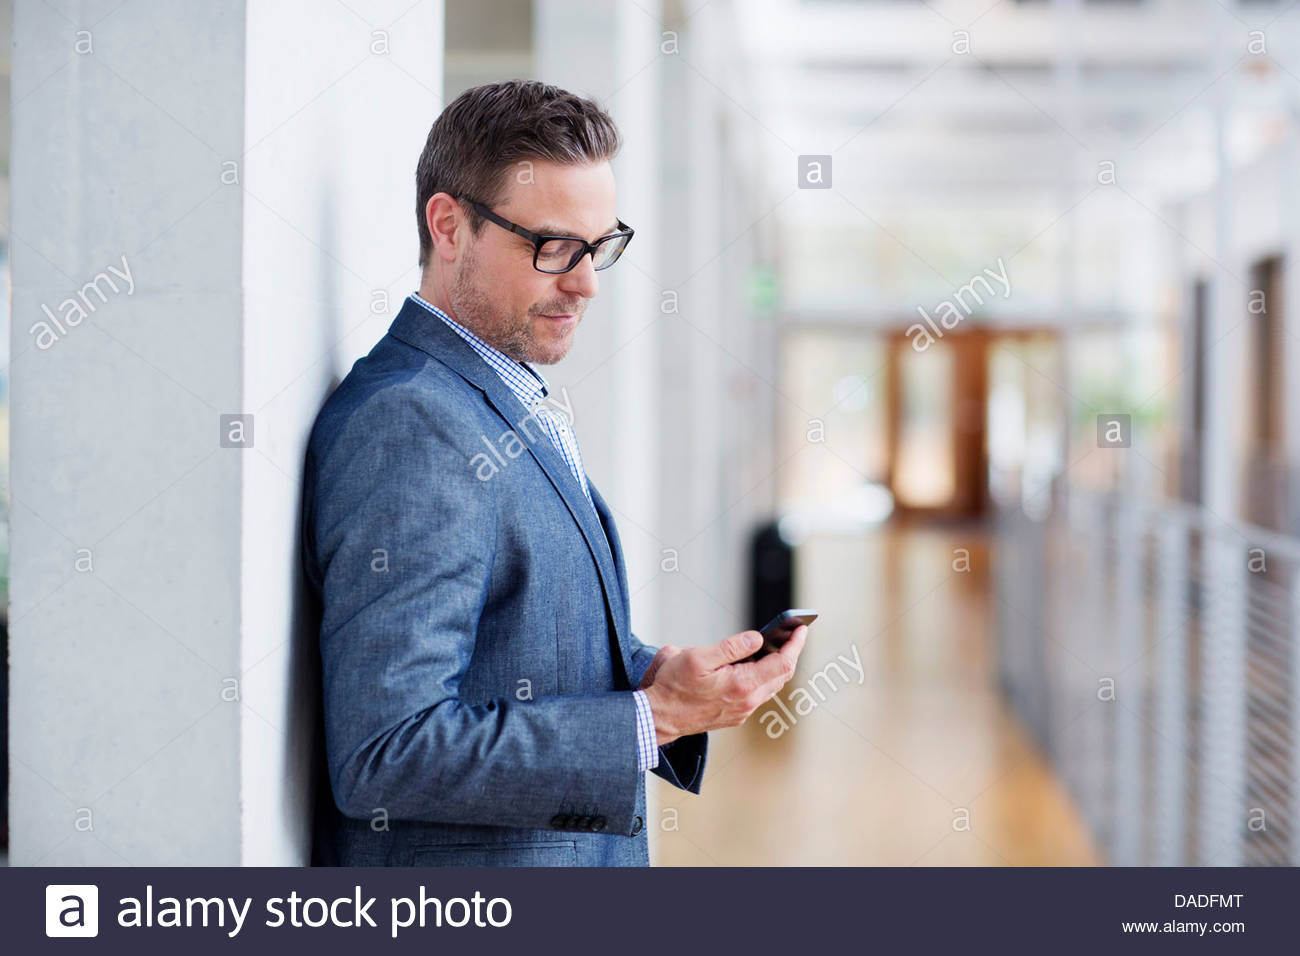 Man looking at mobile phone - Stock Image